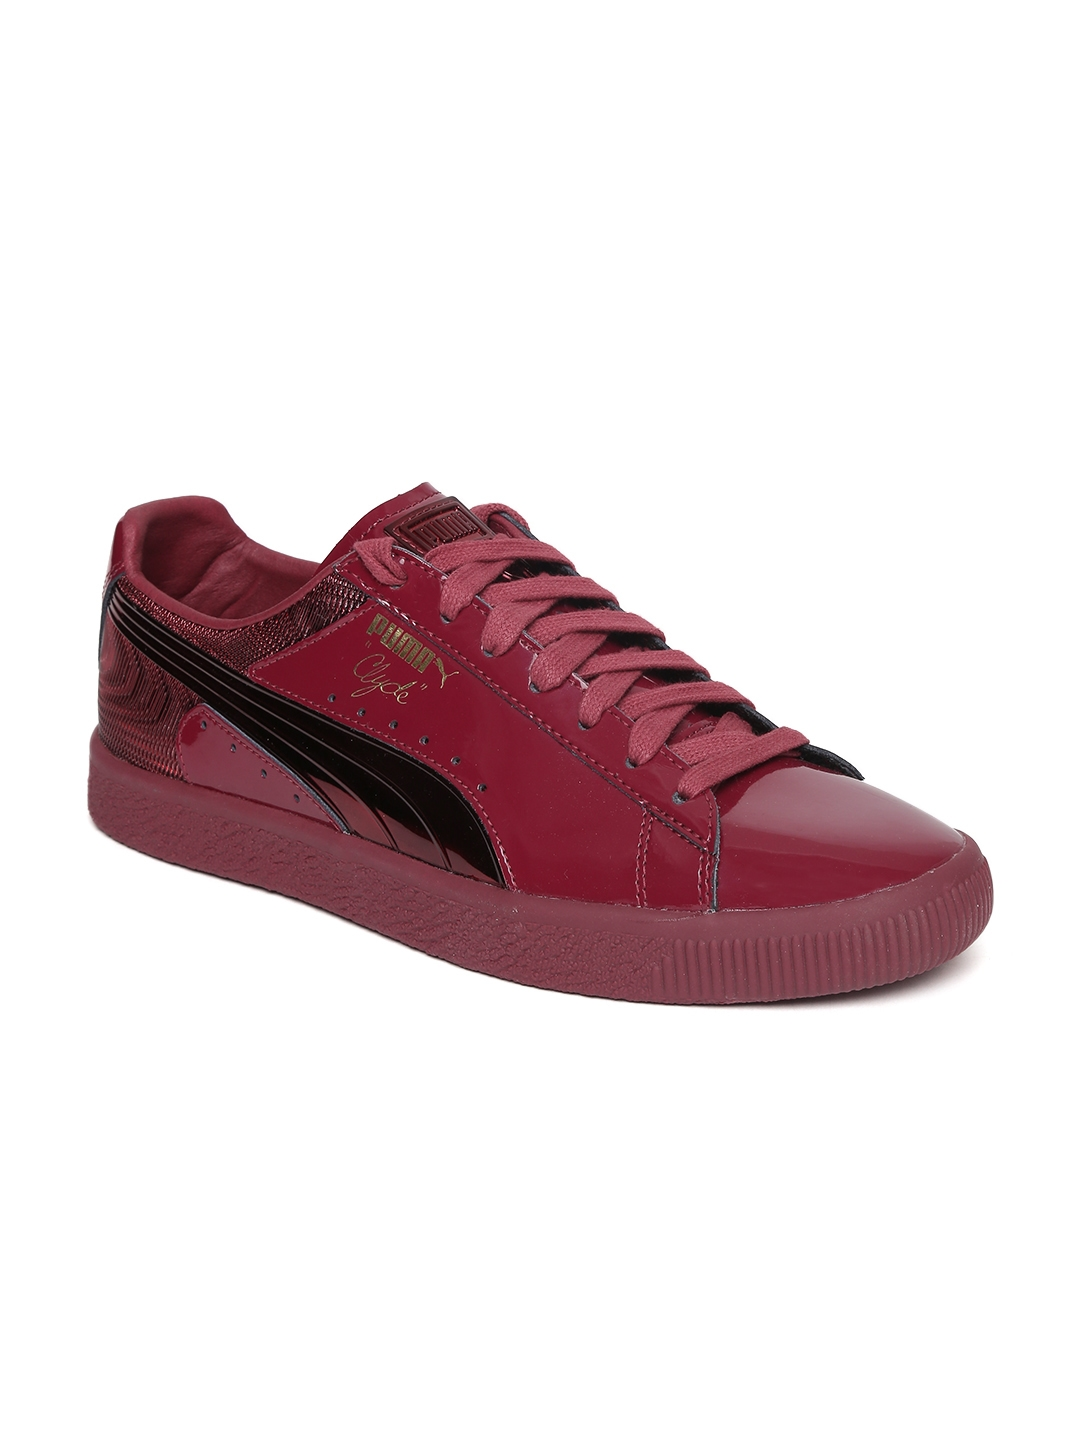 Buy Puma Unisex Maroon Clyde Wraith Leather Sneakers - Casual Shoes ... d861fa788